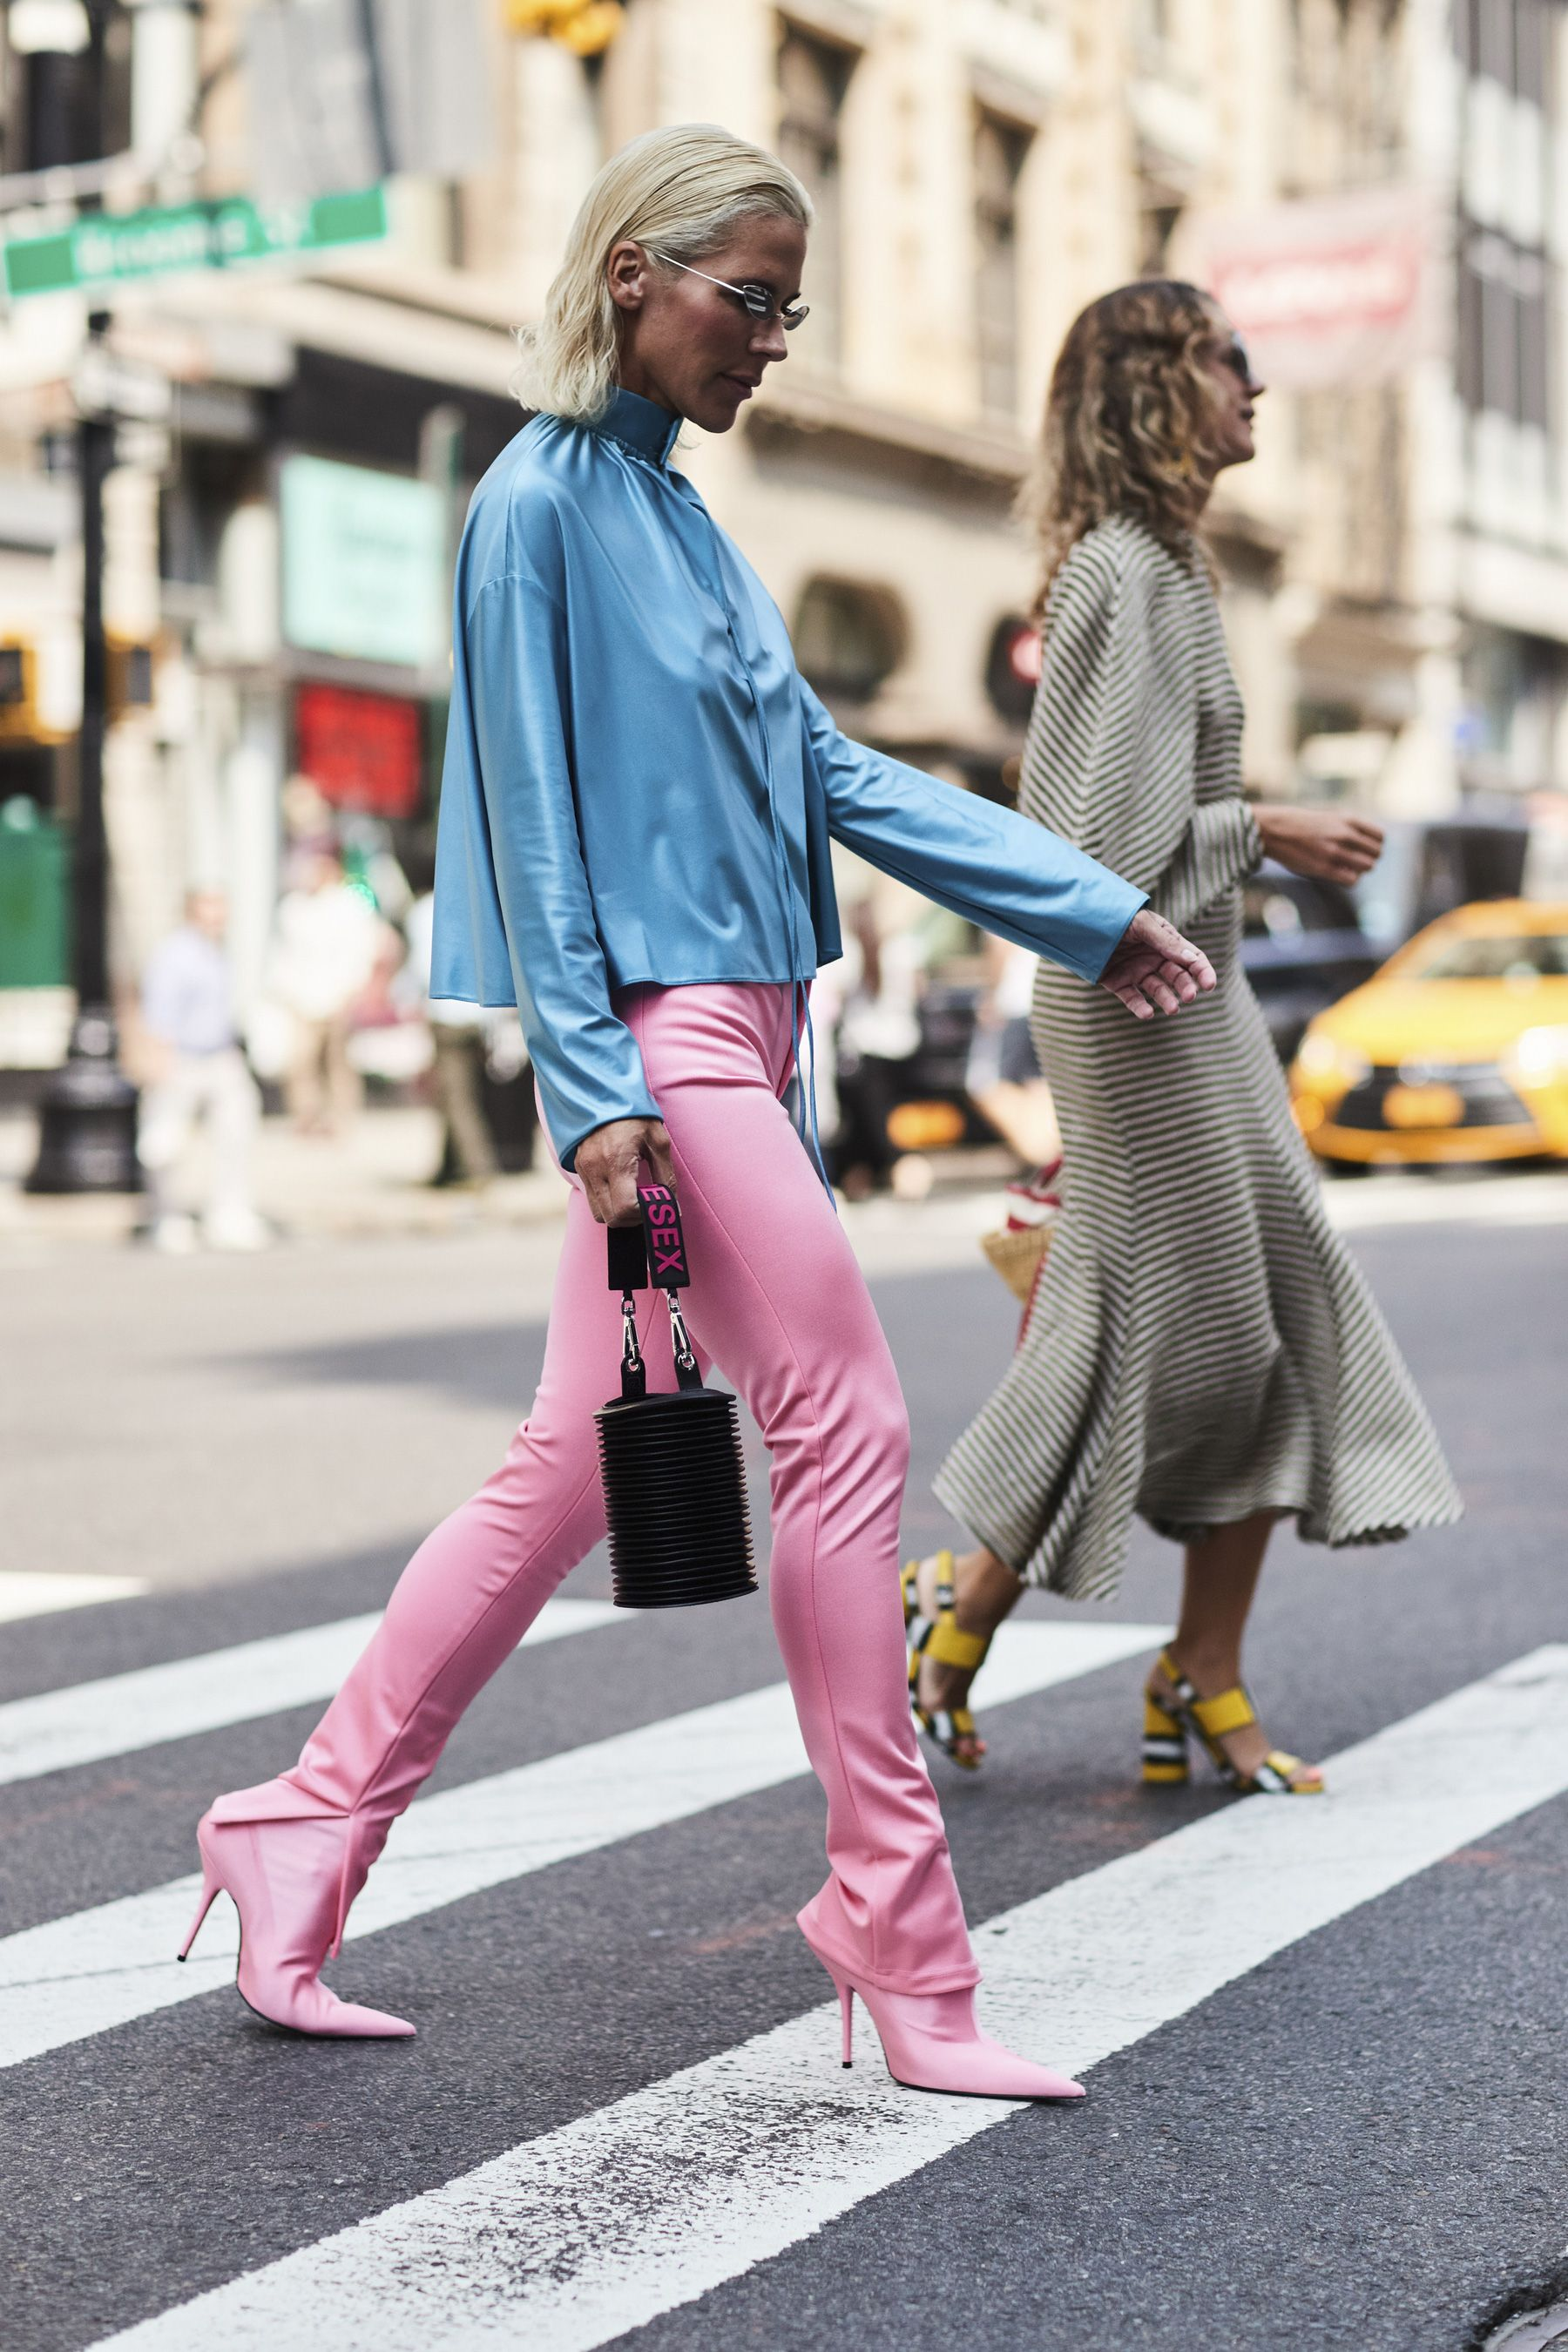 The Best Street Style From New York Fashion Week Street Style Spring 2018 Day 6 Cont Cool Street Fashion Fashion Fashion Week Street Style